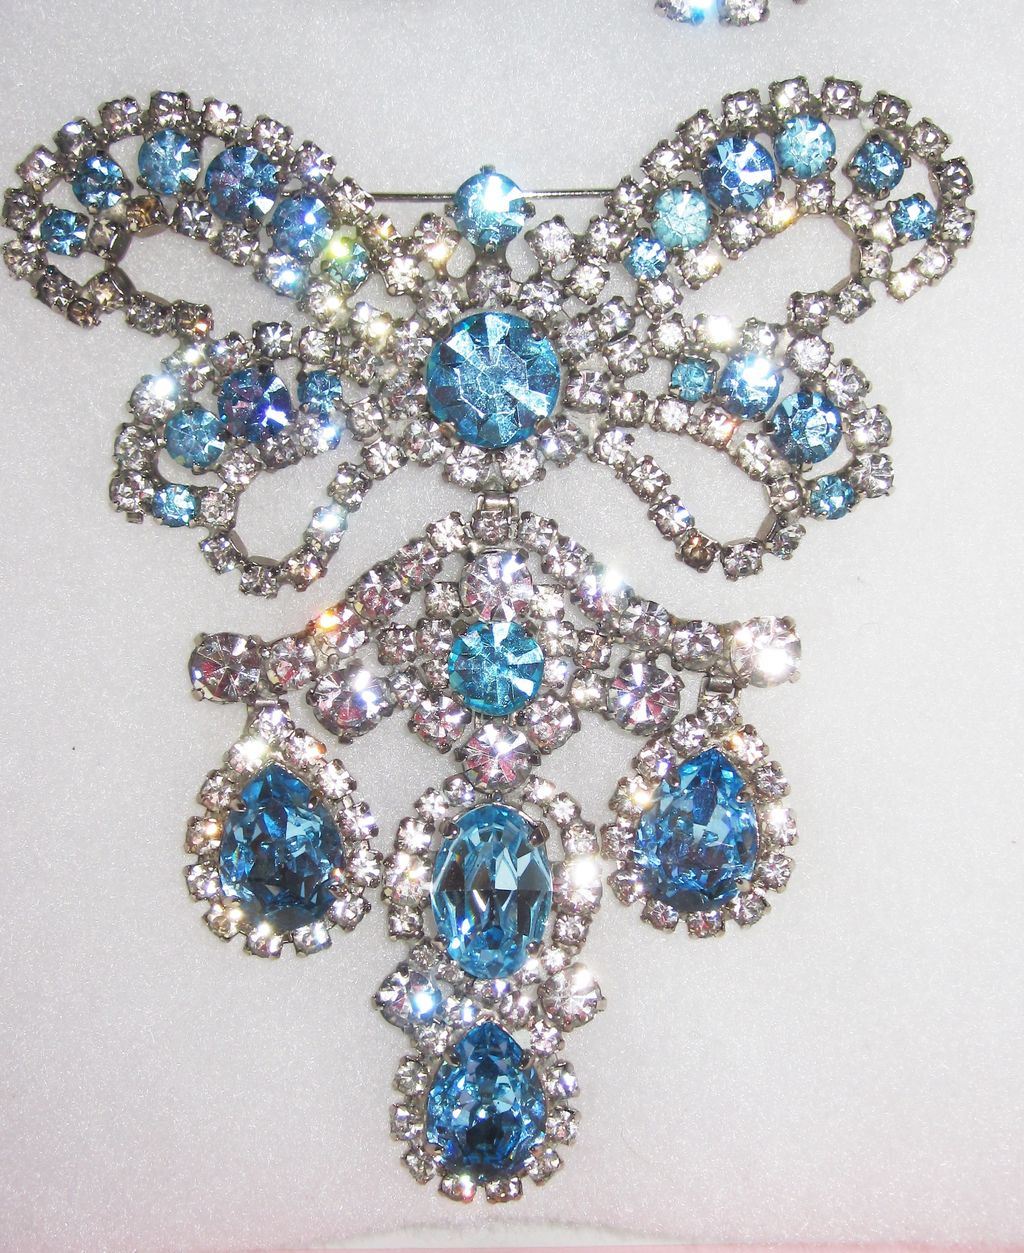 Large Unsigned Girandole Brooch with Earrings Runway! Demi-Parure